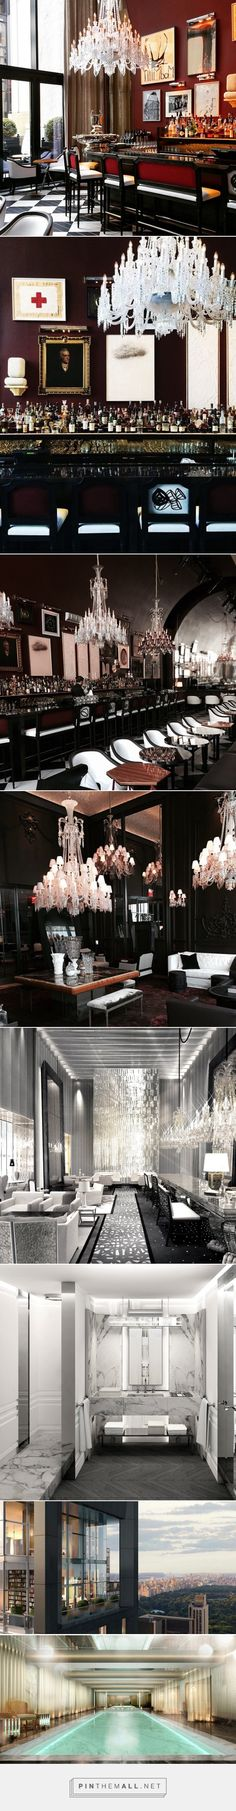 Habitually Chic® » Chic in New York: Baccarat Hotel - created via http://pinthemall.net